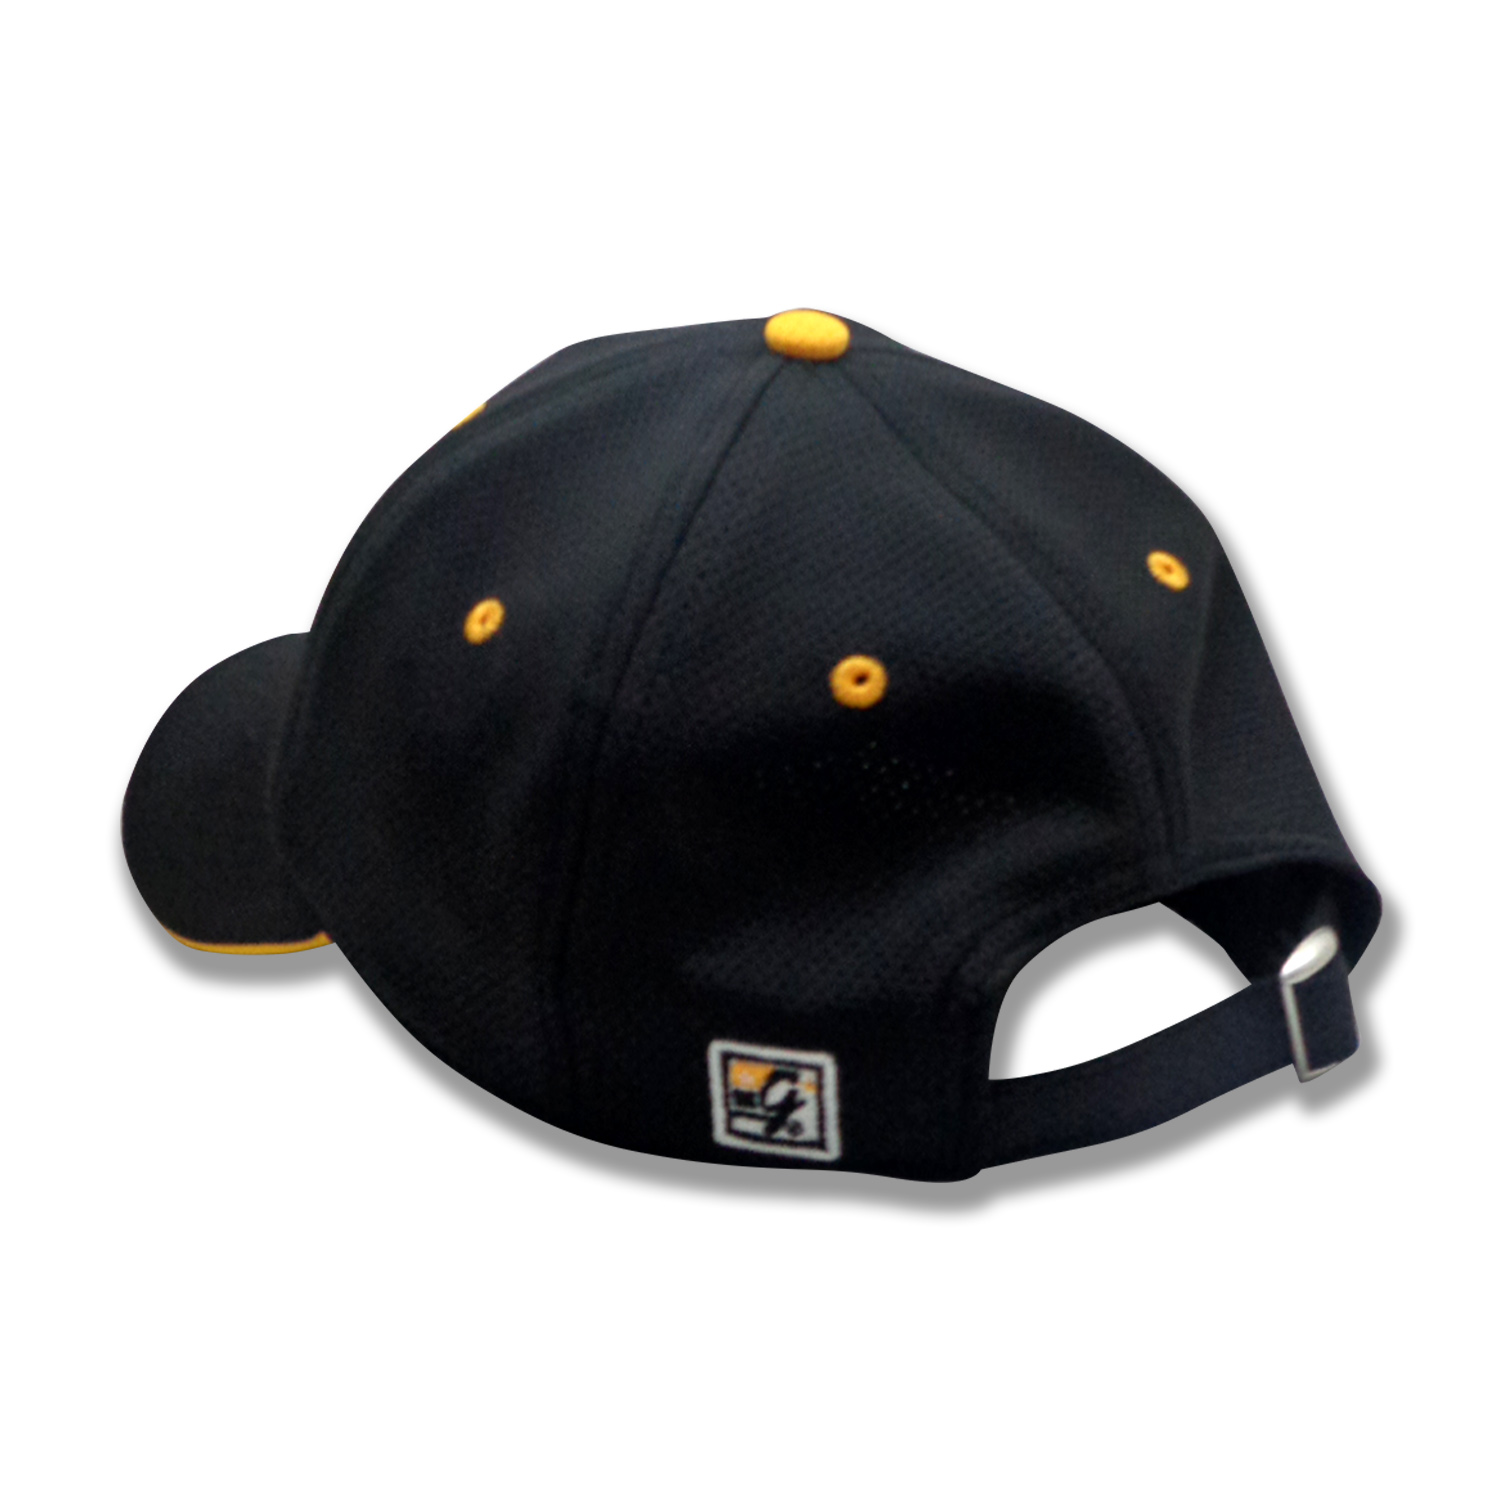 Image for the FHSU Tigers Instant Cooling Brr Hat, Slide Buckle Closure, Black, The Game product